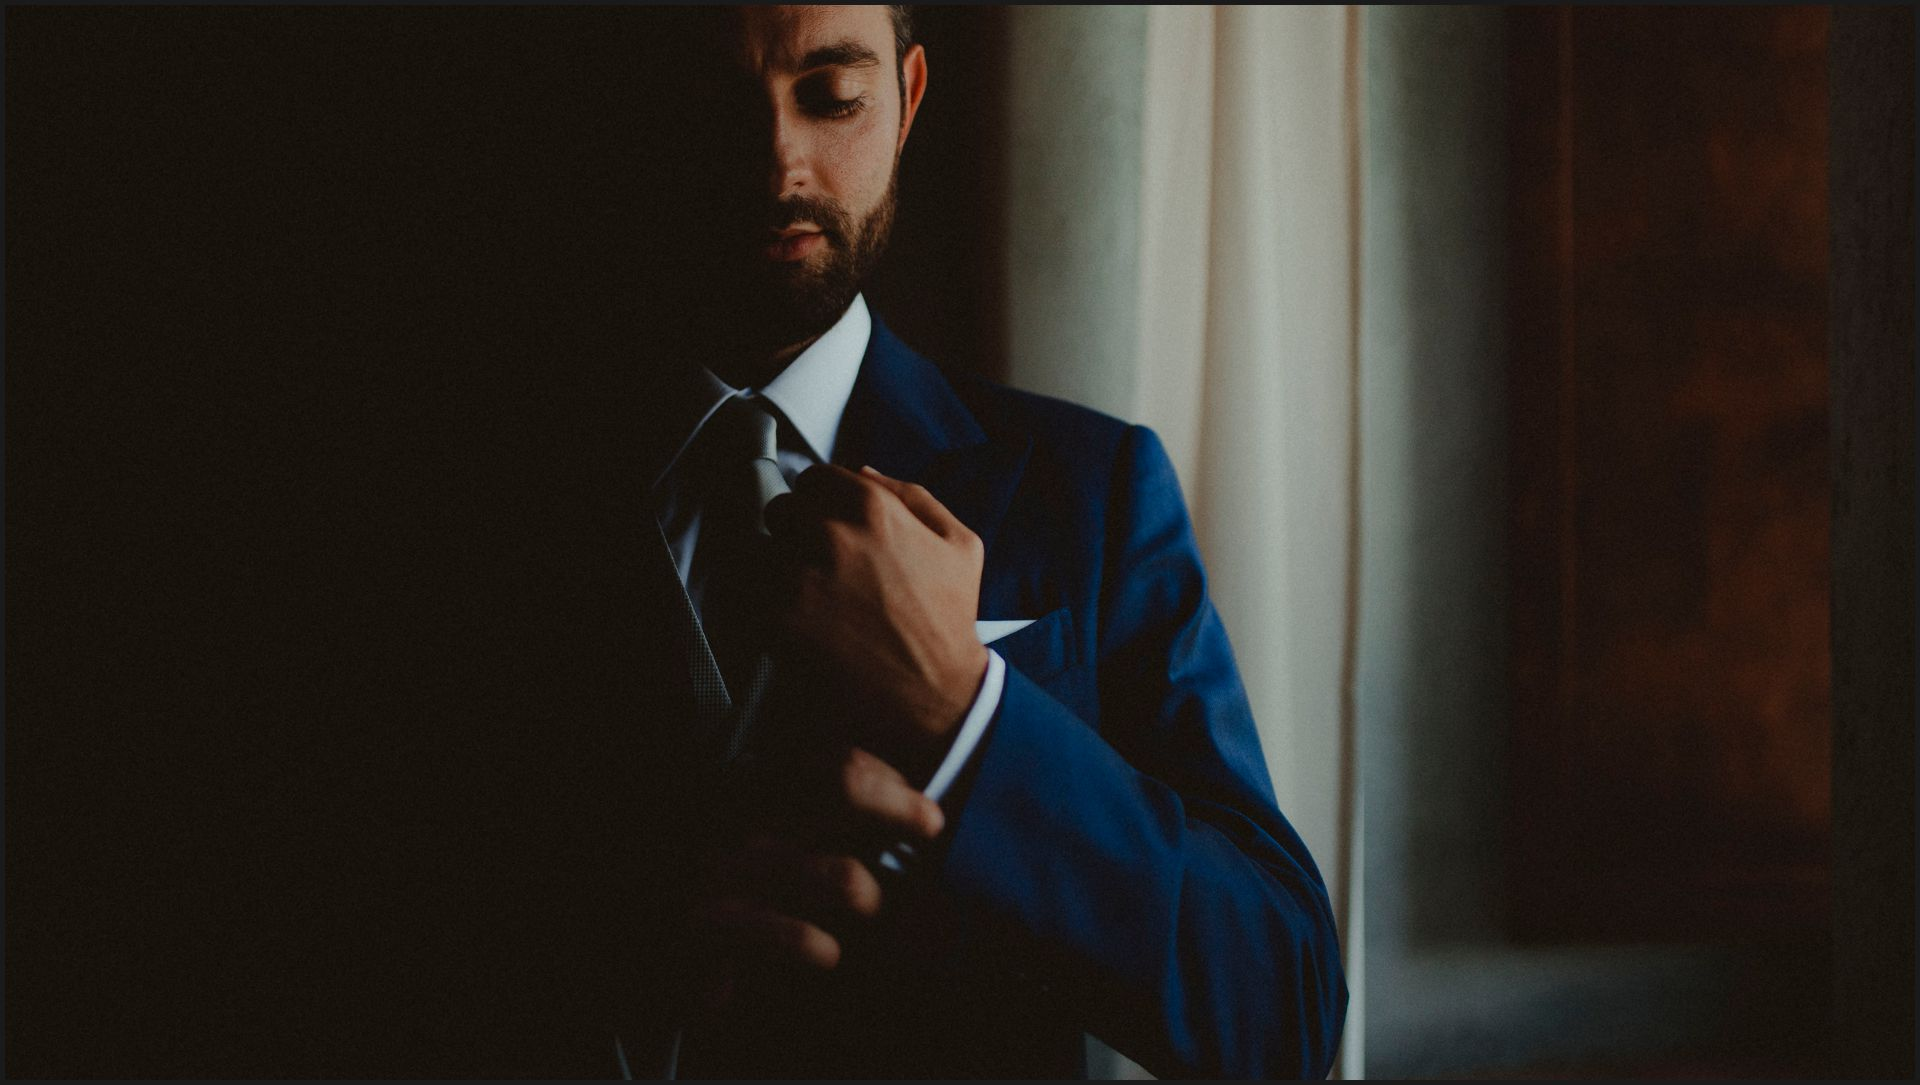 tenuta di canonica, umbria, wedding, groom, preparation, light